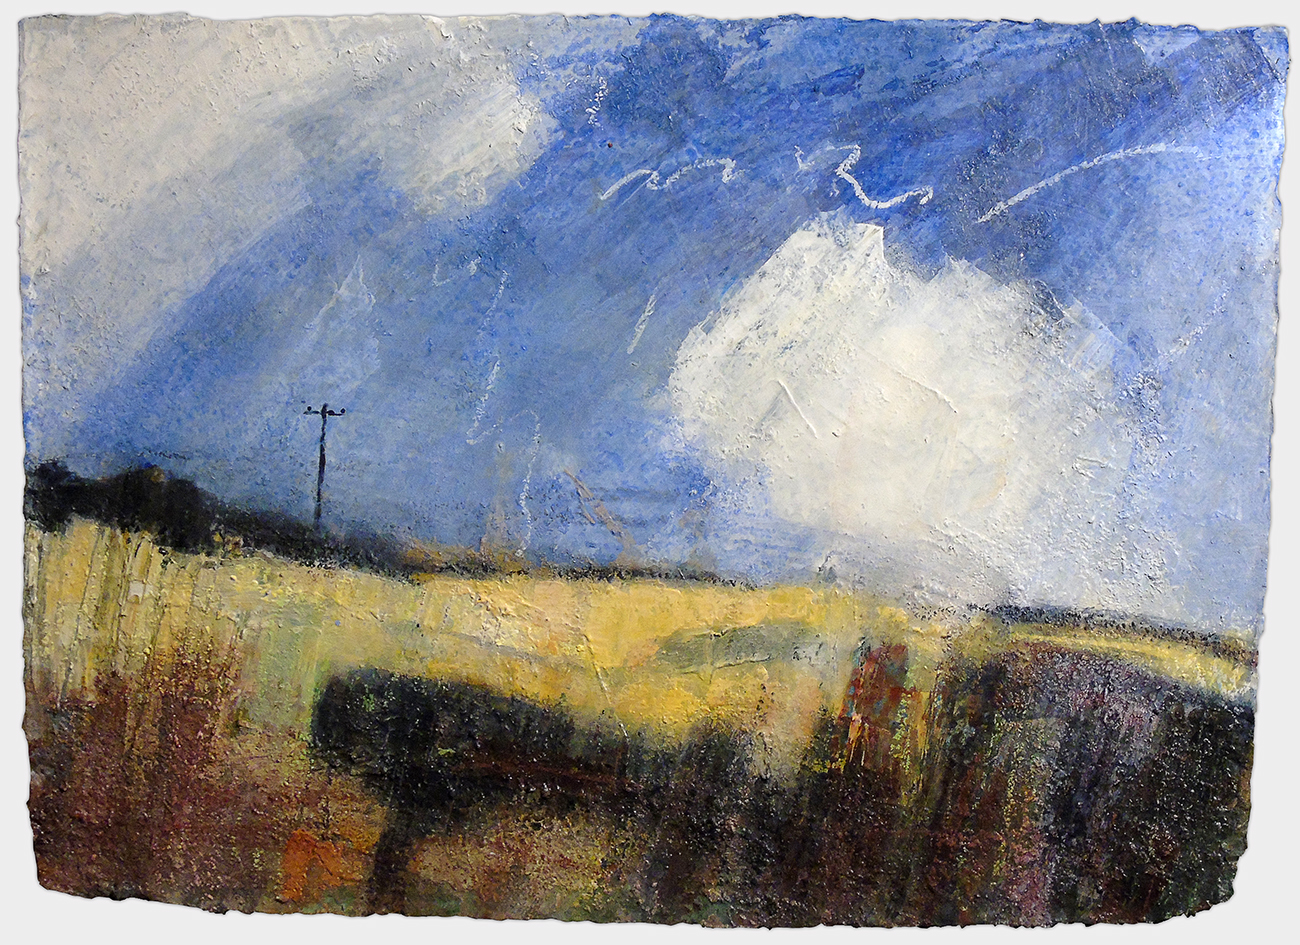 Towards Patrington Haven from Outstray Road, John D. Petty I worked on this, on-and-off, all through last winter (2017–18) before deciding it was finished. I'm a big fan of texture and with a workshop below my studio space there's no shortage of sawdust, so… It's a little like painting with porridge at first, but once it has a few coats of acrylic over it, it's as hard as rock. Acrylic and oil pastel (and sawdust) on paper, 22x15 inches.